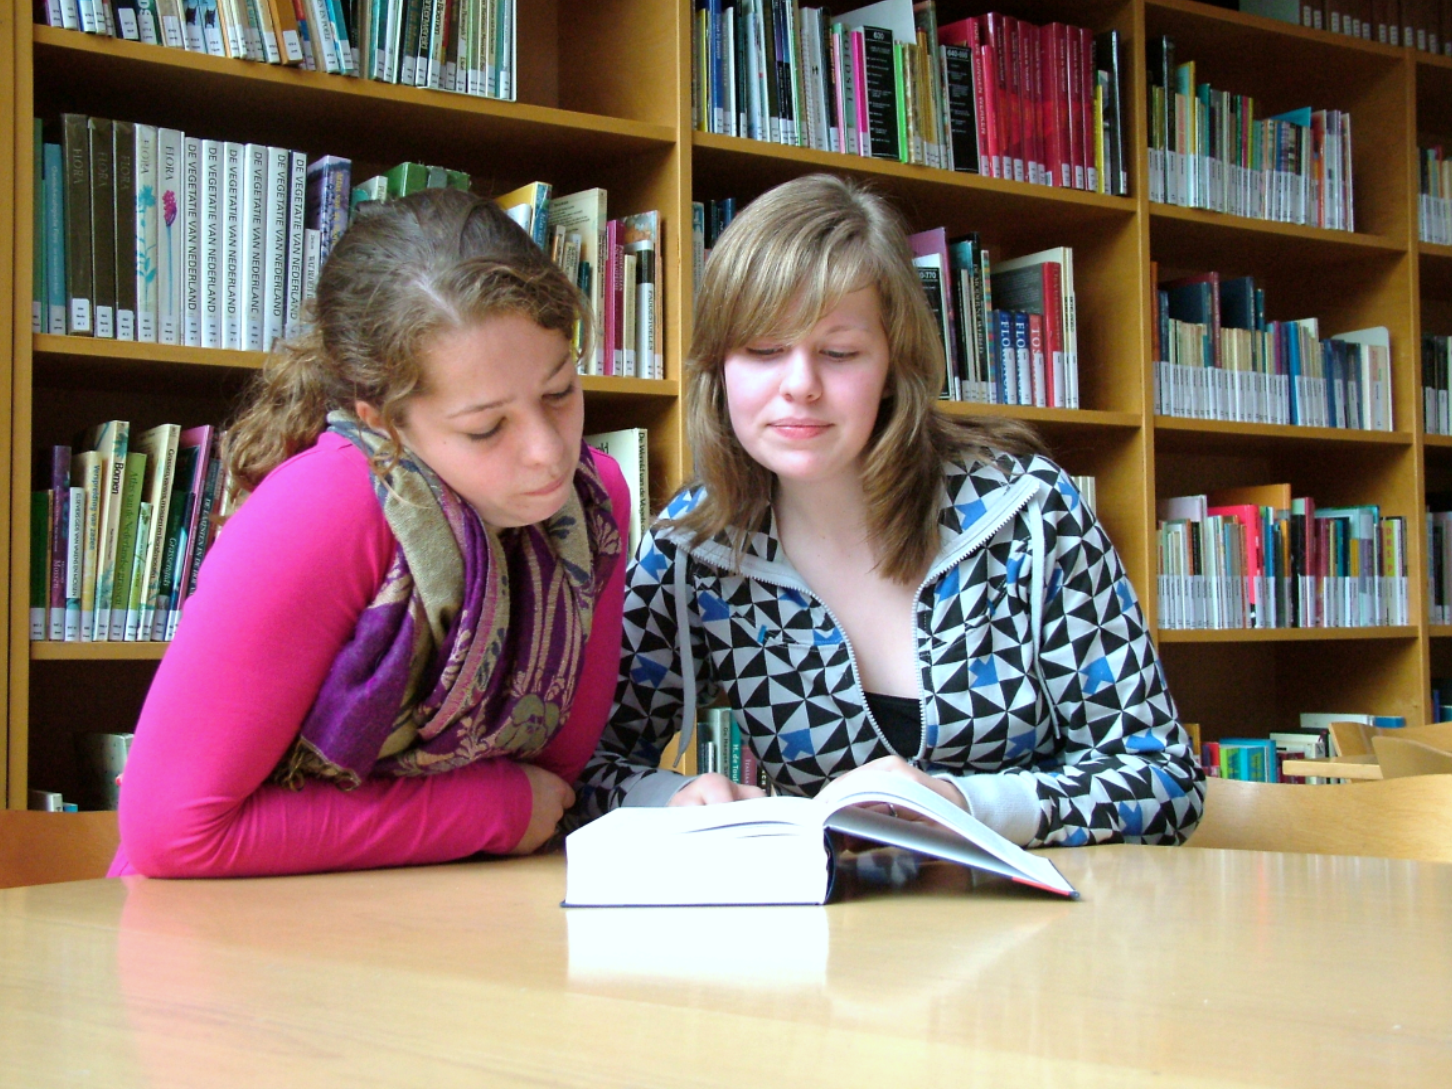 Photograph of a woman tutoring a girl in a library.